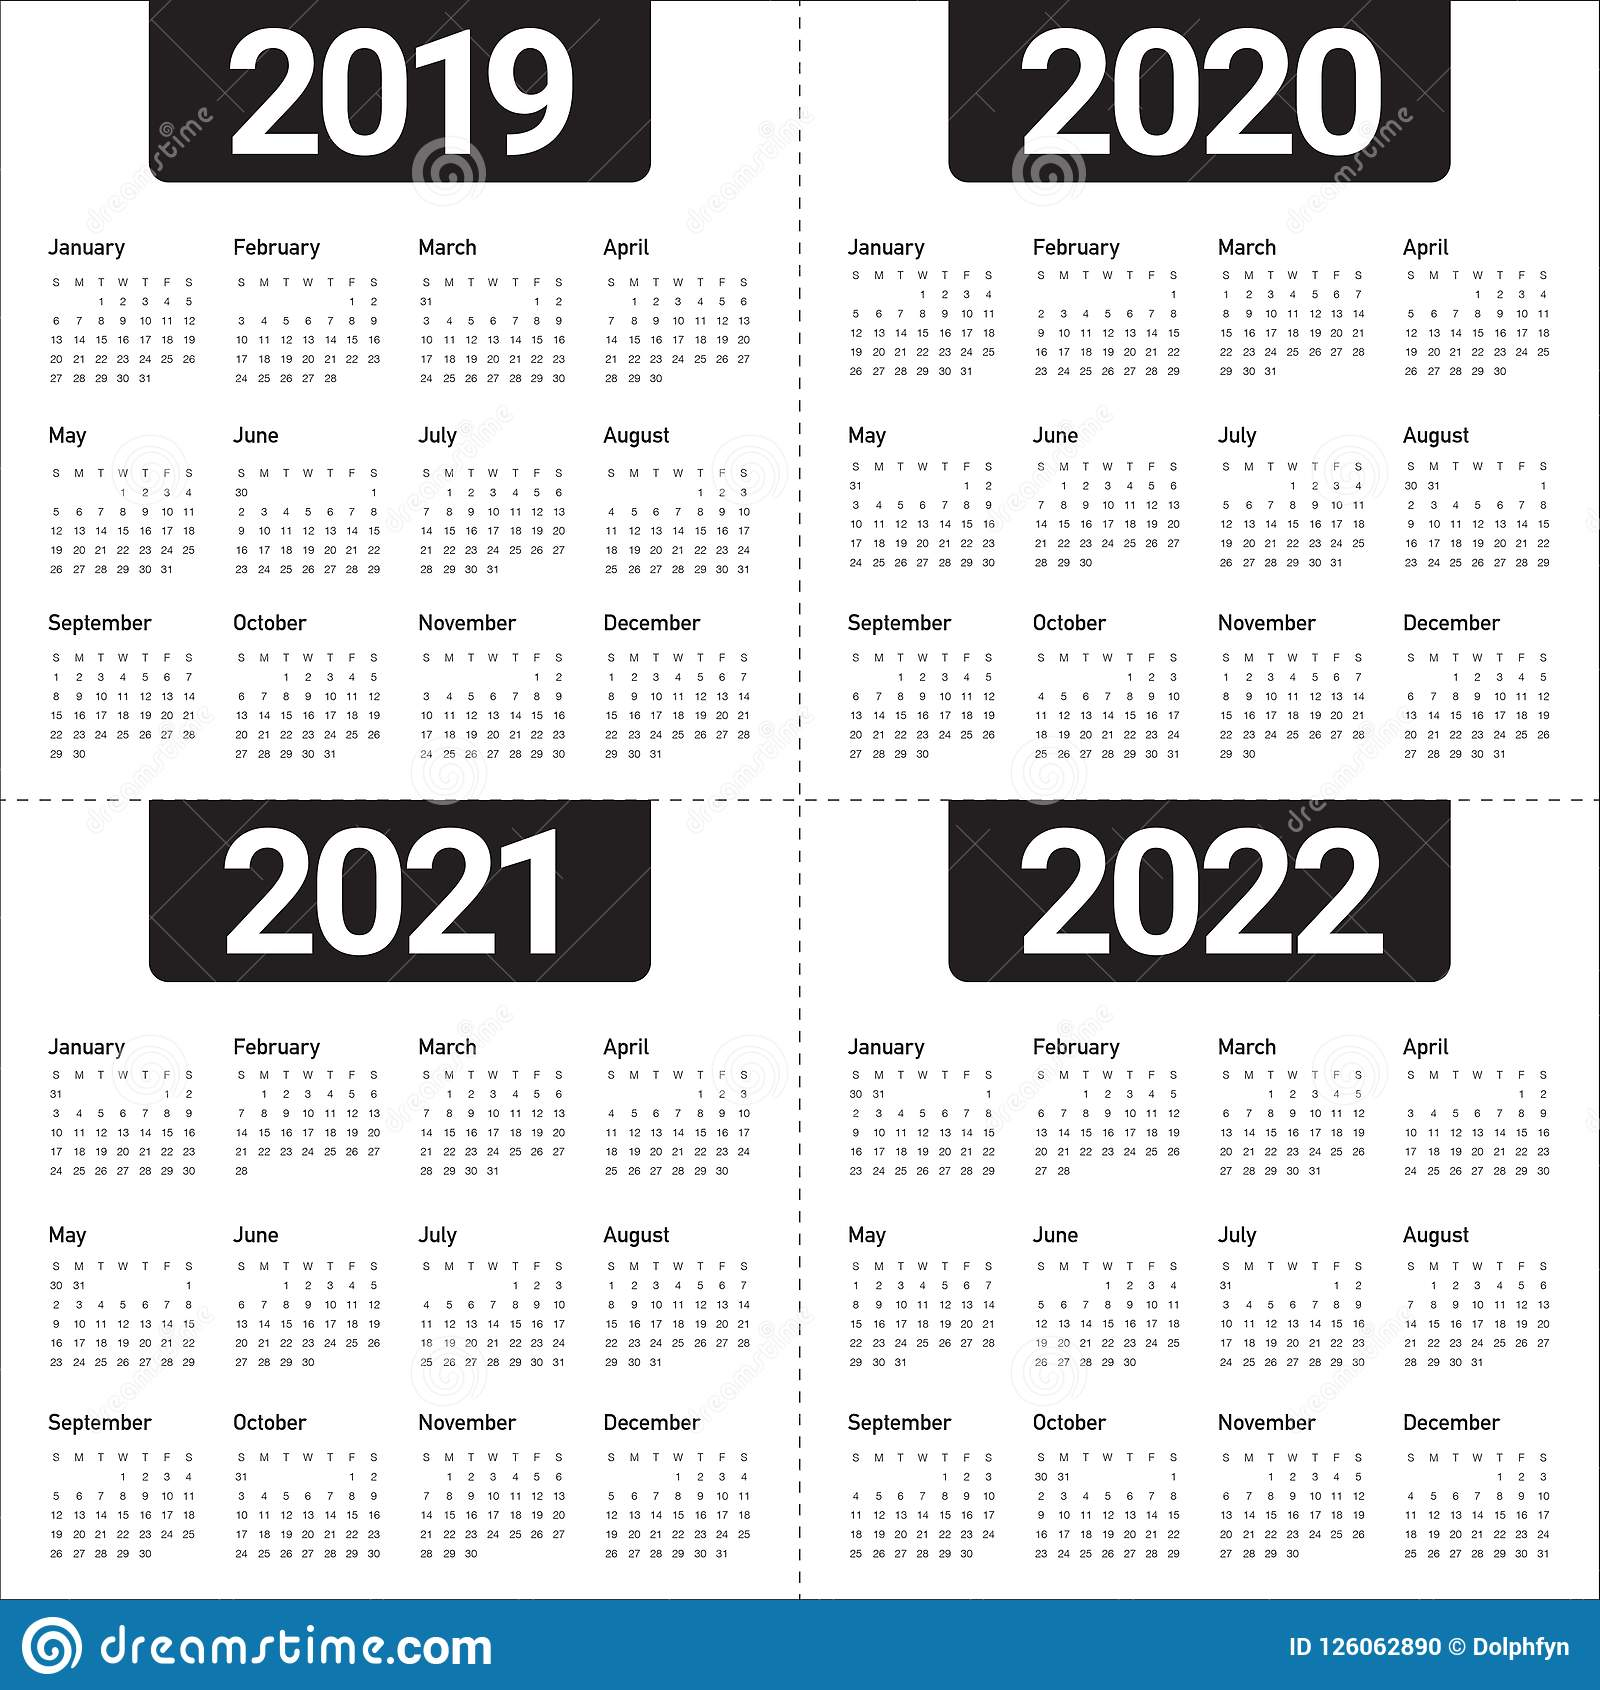 photograph regarding 2022 Calendar Printable named 12 months 2019 2020 2021 2022 Calendar Vector Structure Template